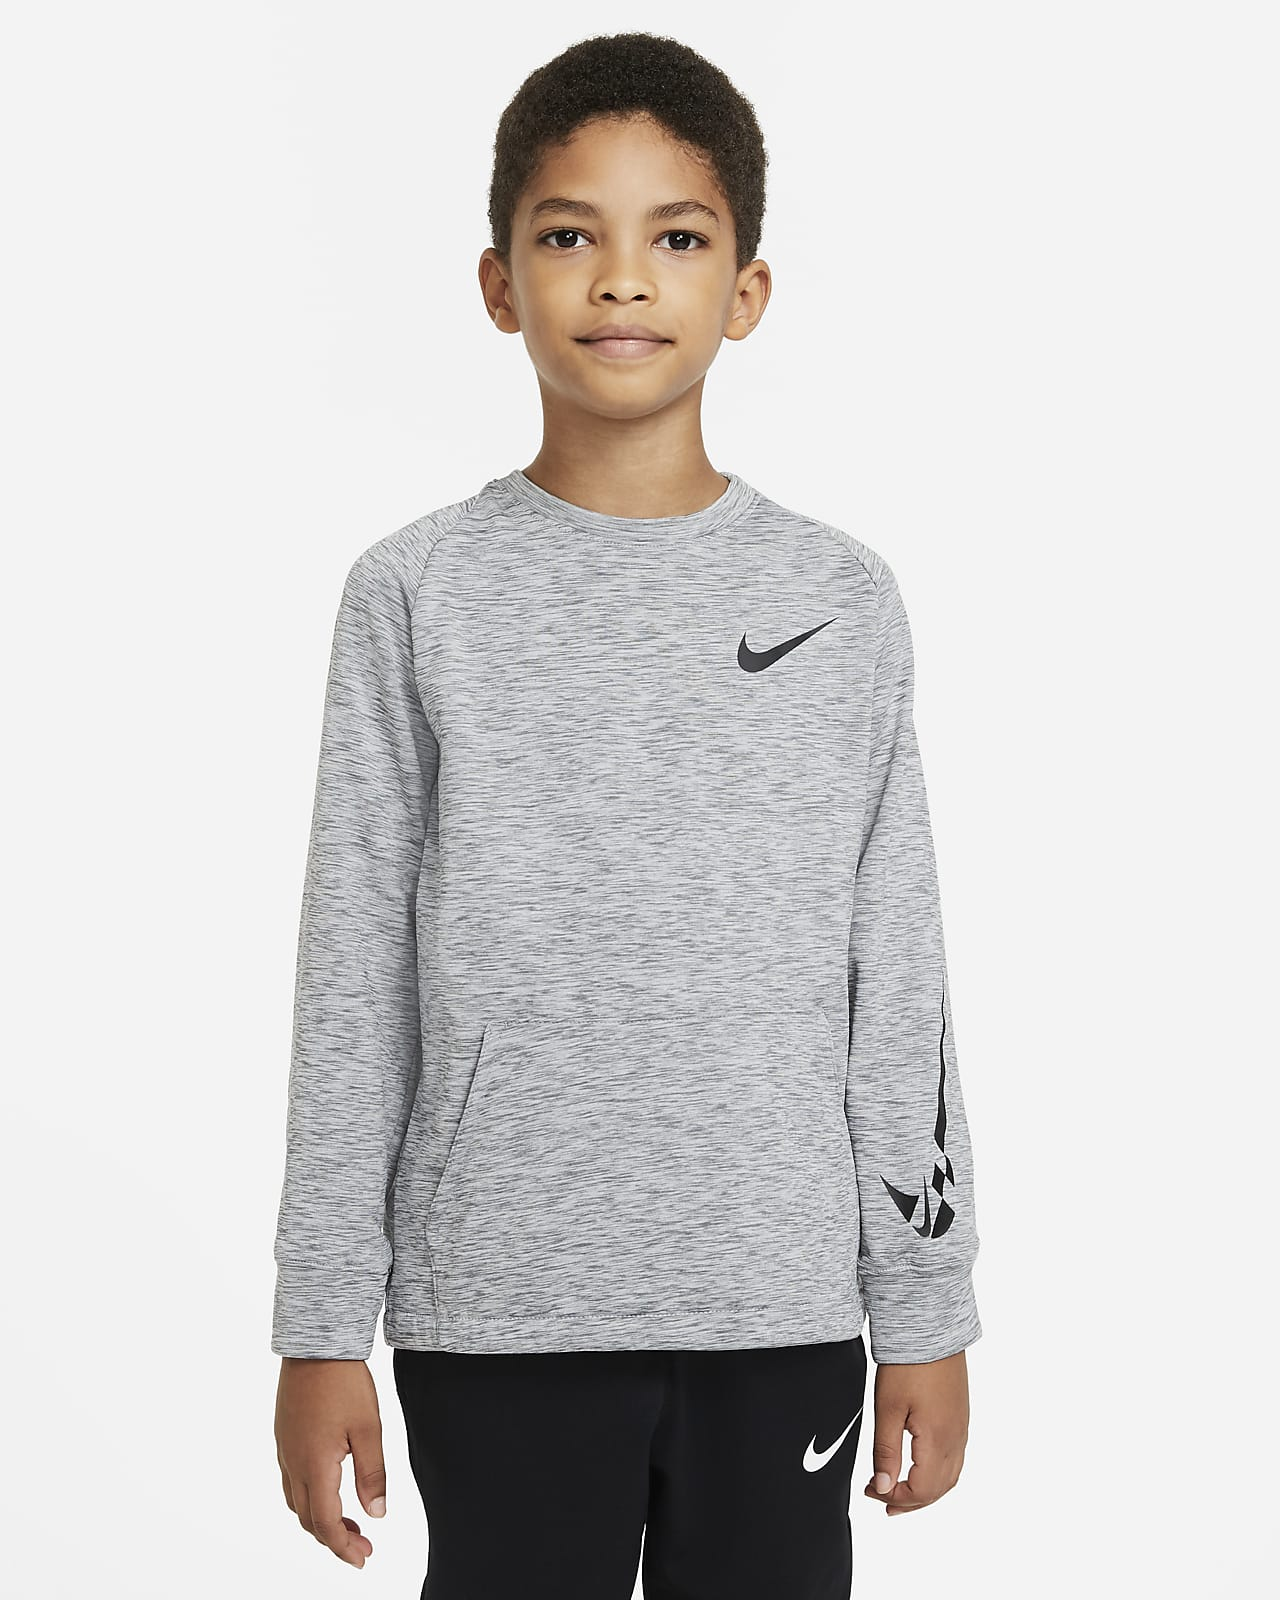 Nike Older Kids' (Boys') Fleece Training Top